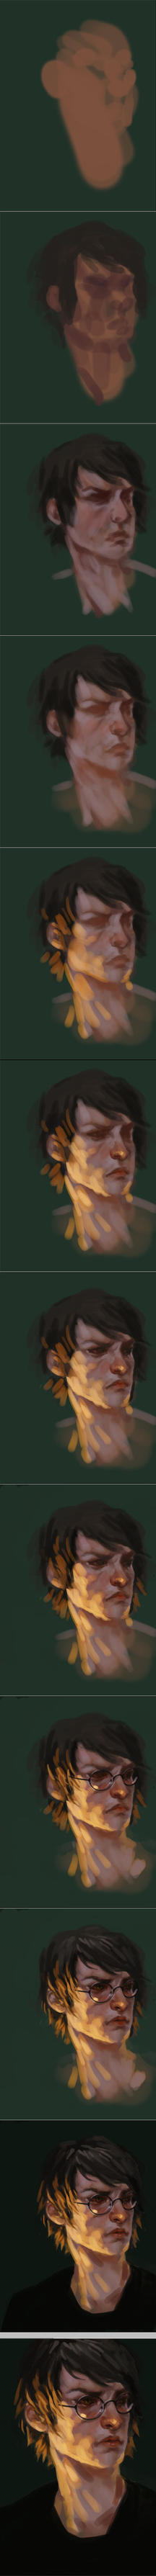 harry portrait process by toerning